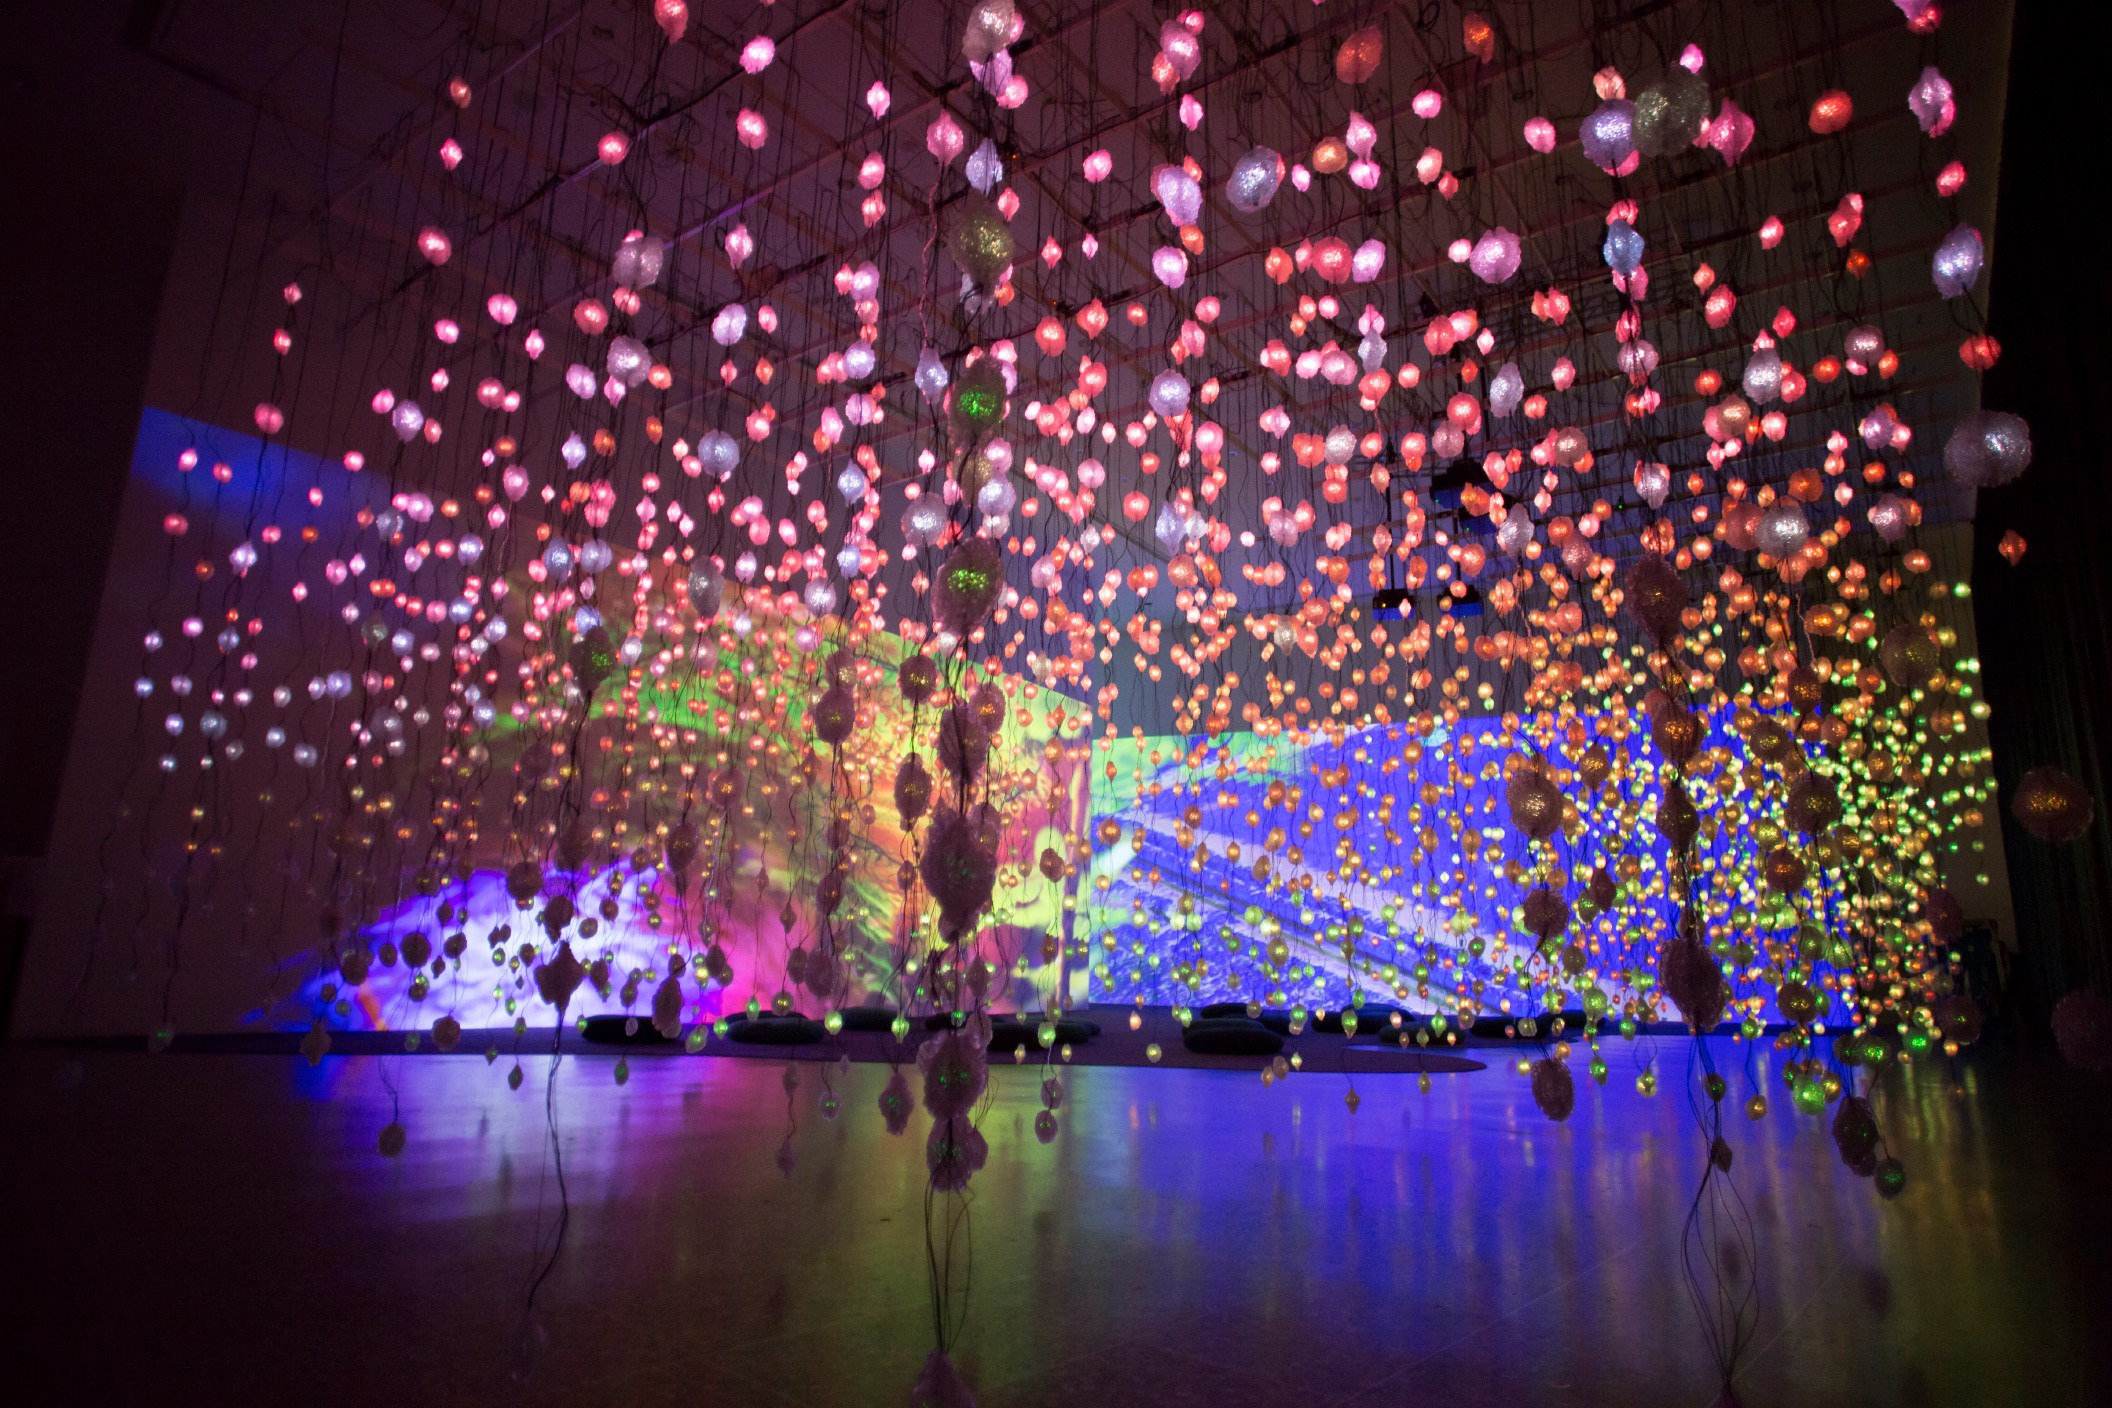 Pipilotti Rist, Storyhive photo / Pixel Forest, empty, pink, tighter crop to screen